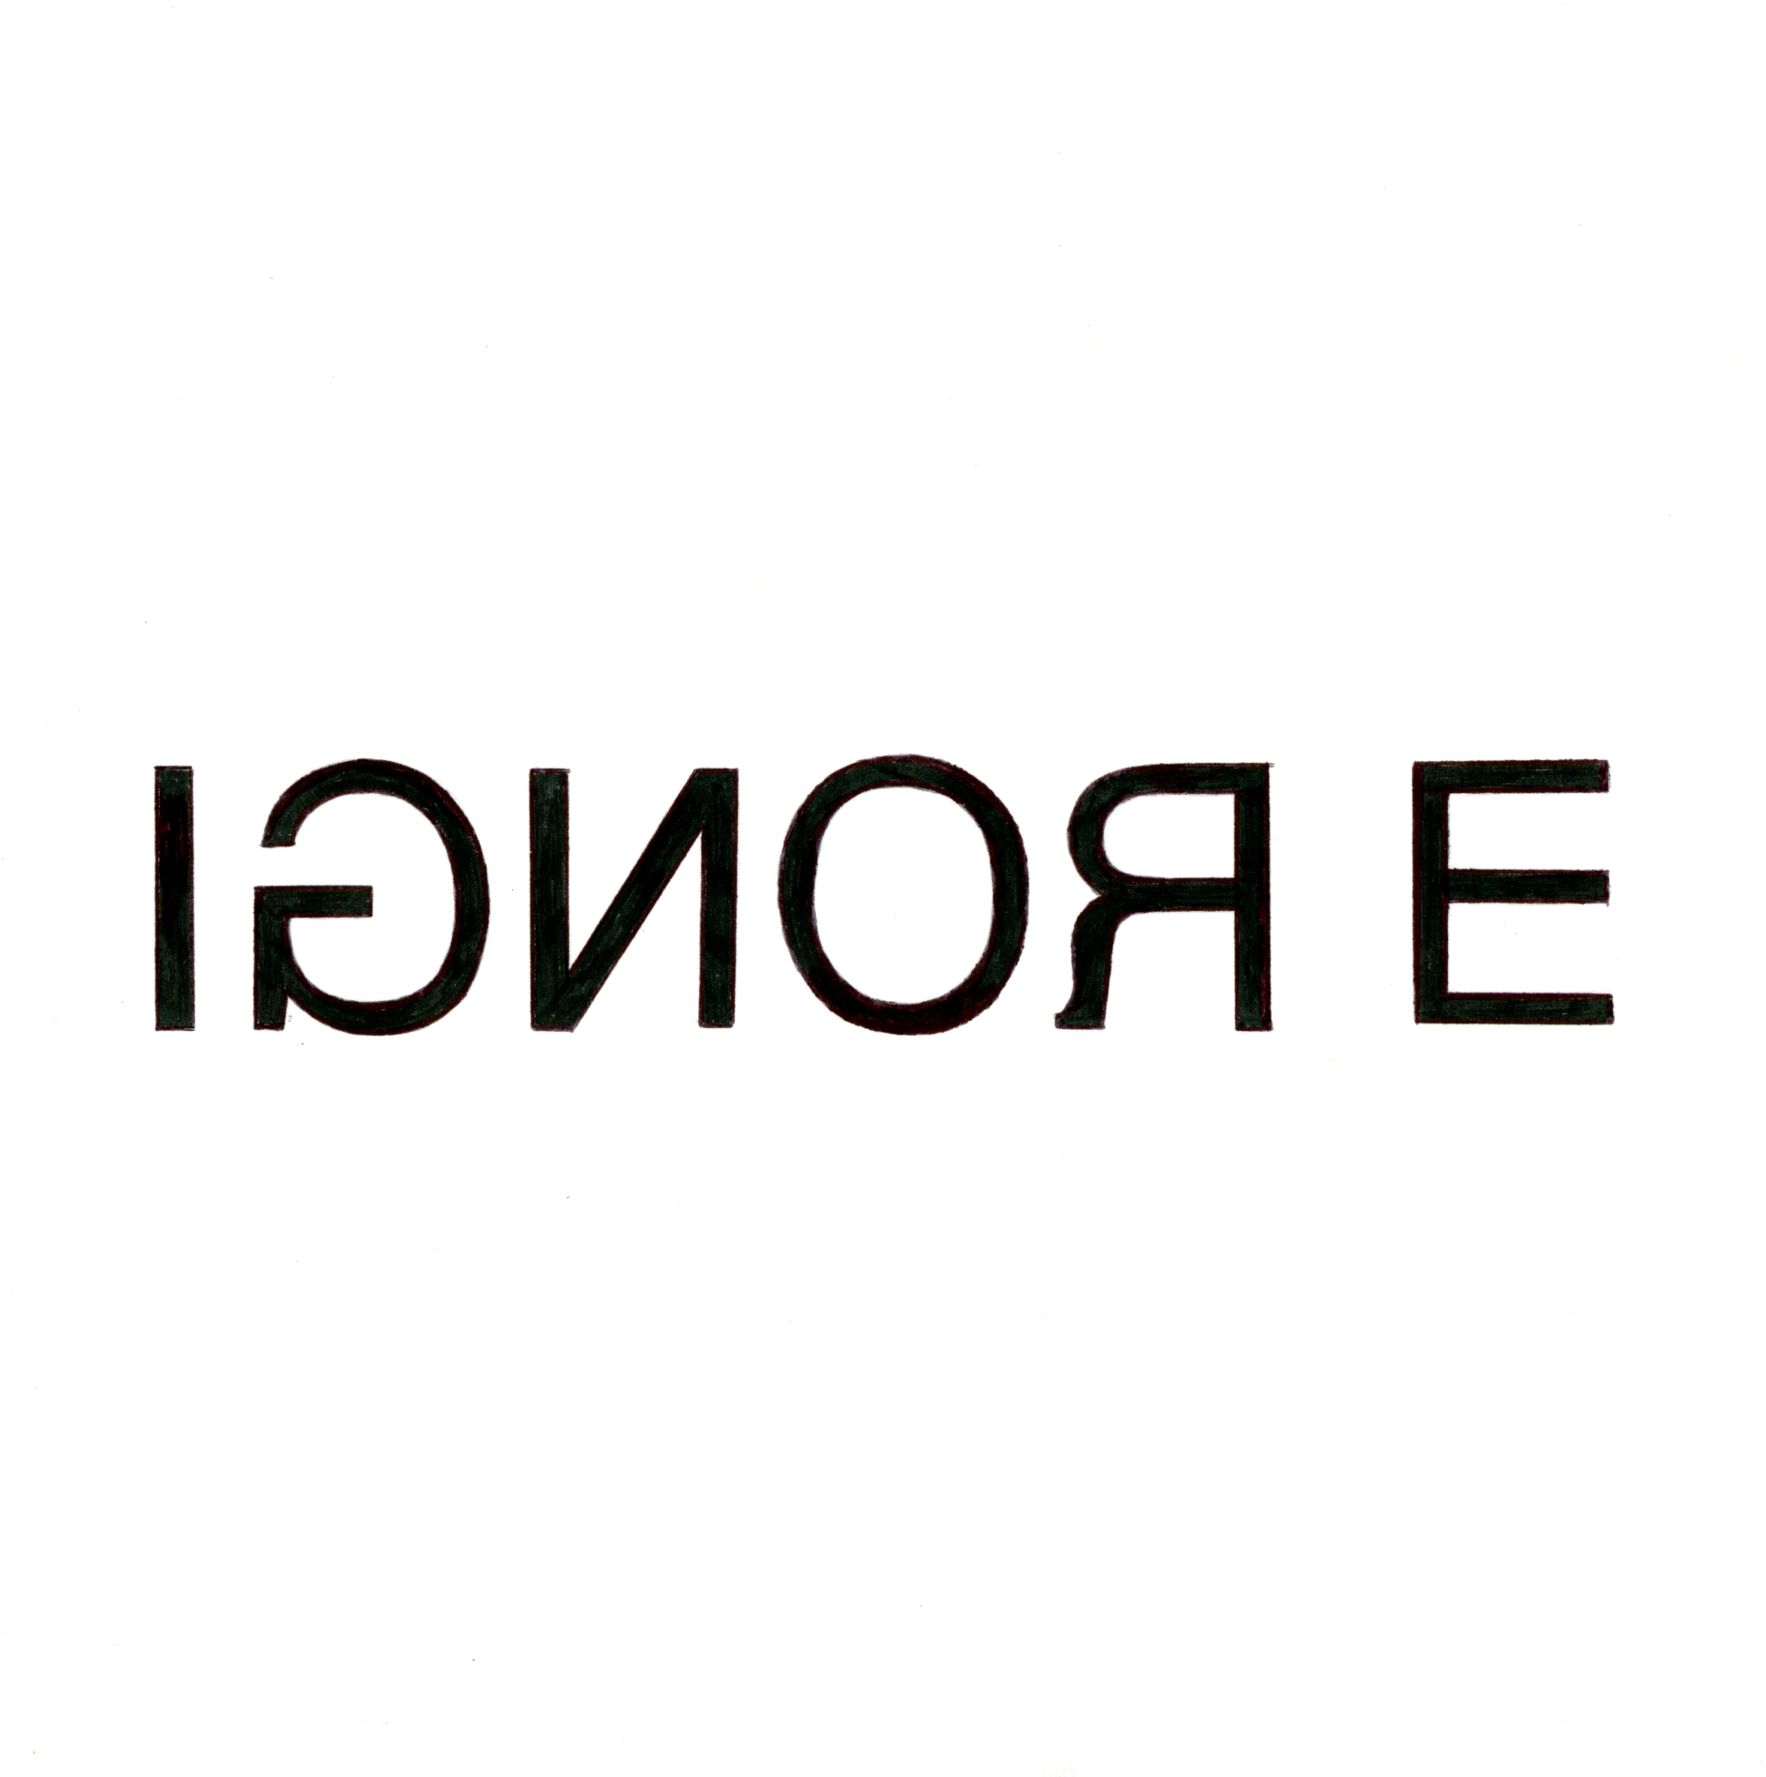 #Ignore #logo #verbicon Morgan Mosshart '17: Type Placement